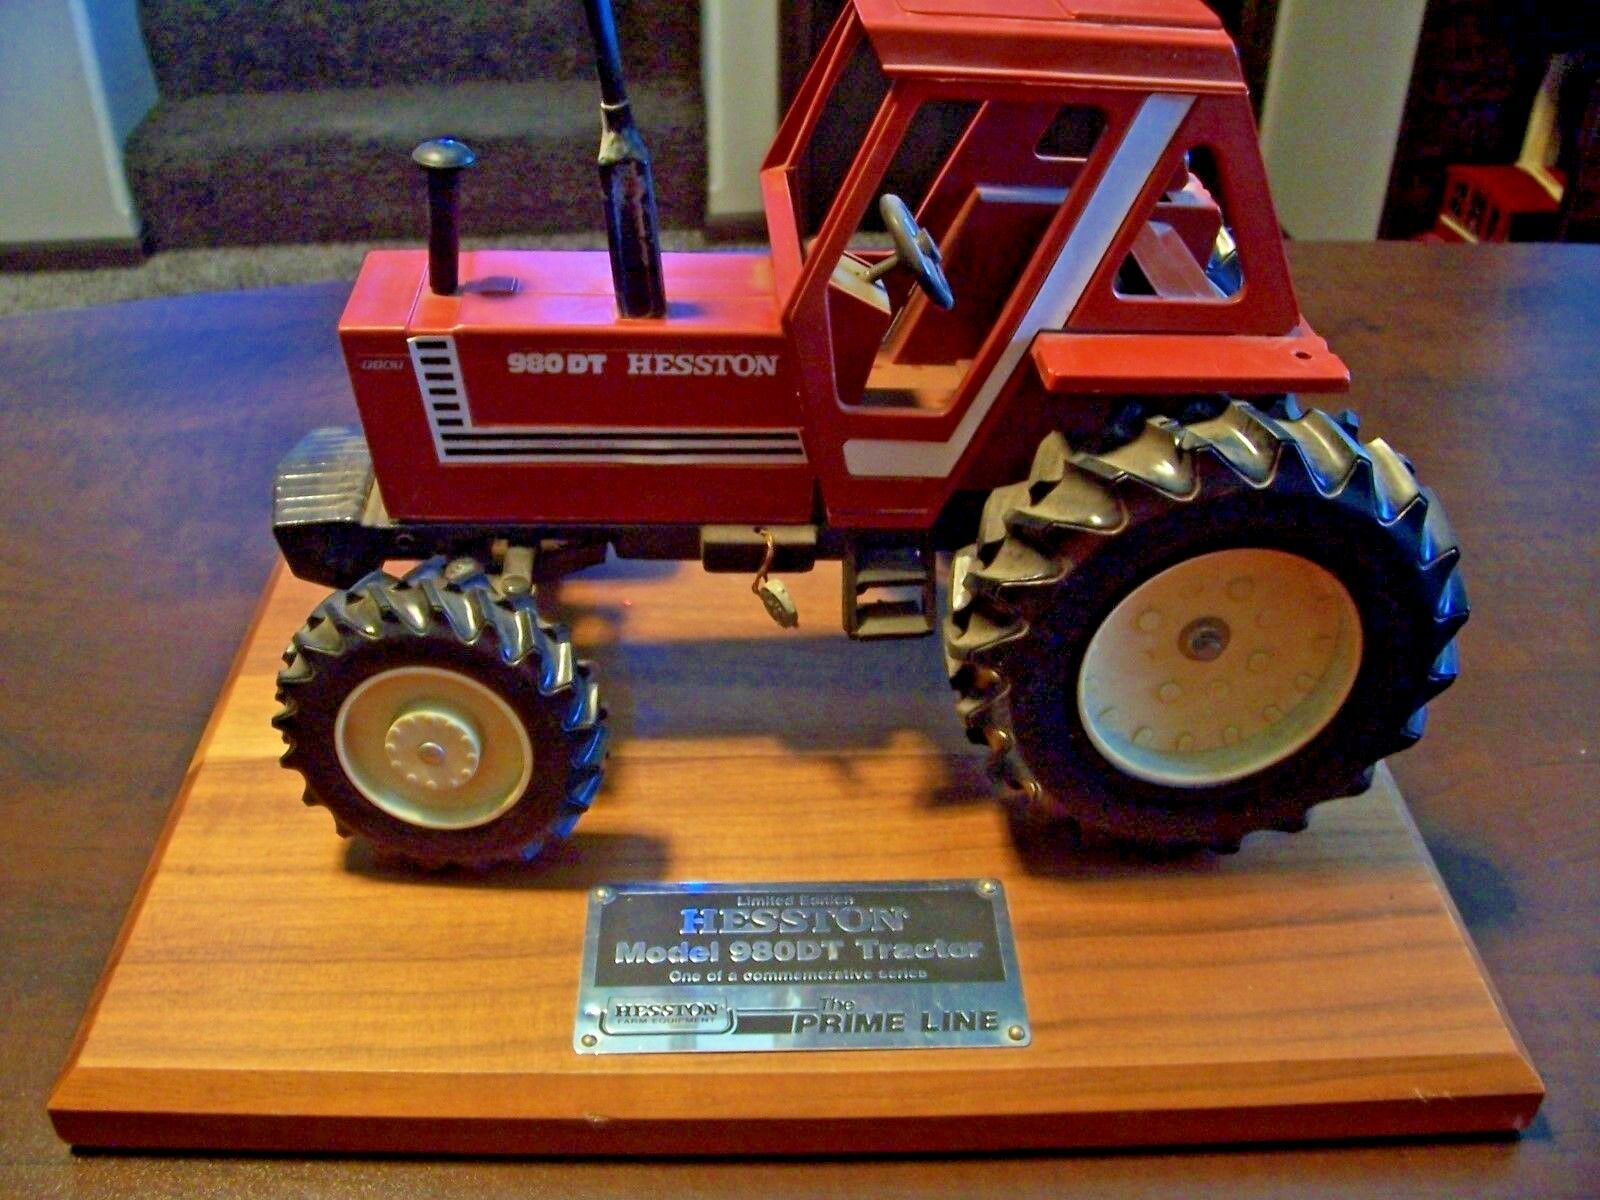 Hesston Fiat 980DT FWA Limited Edition Commemorative 1 16 scale Model Tractor NR